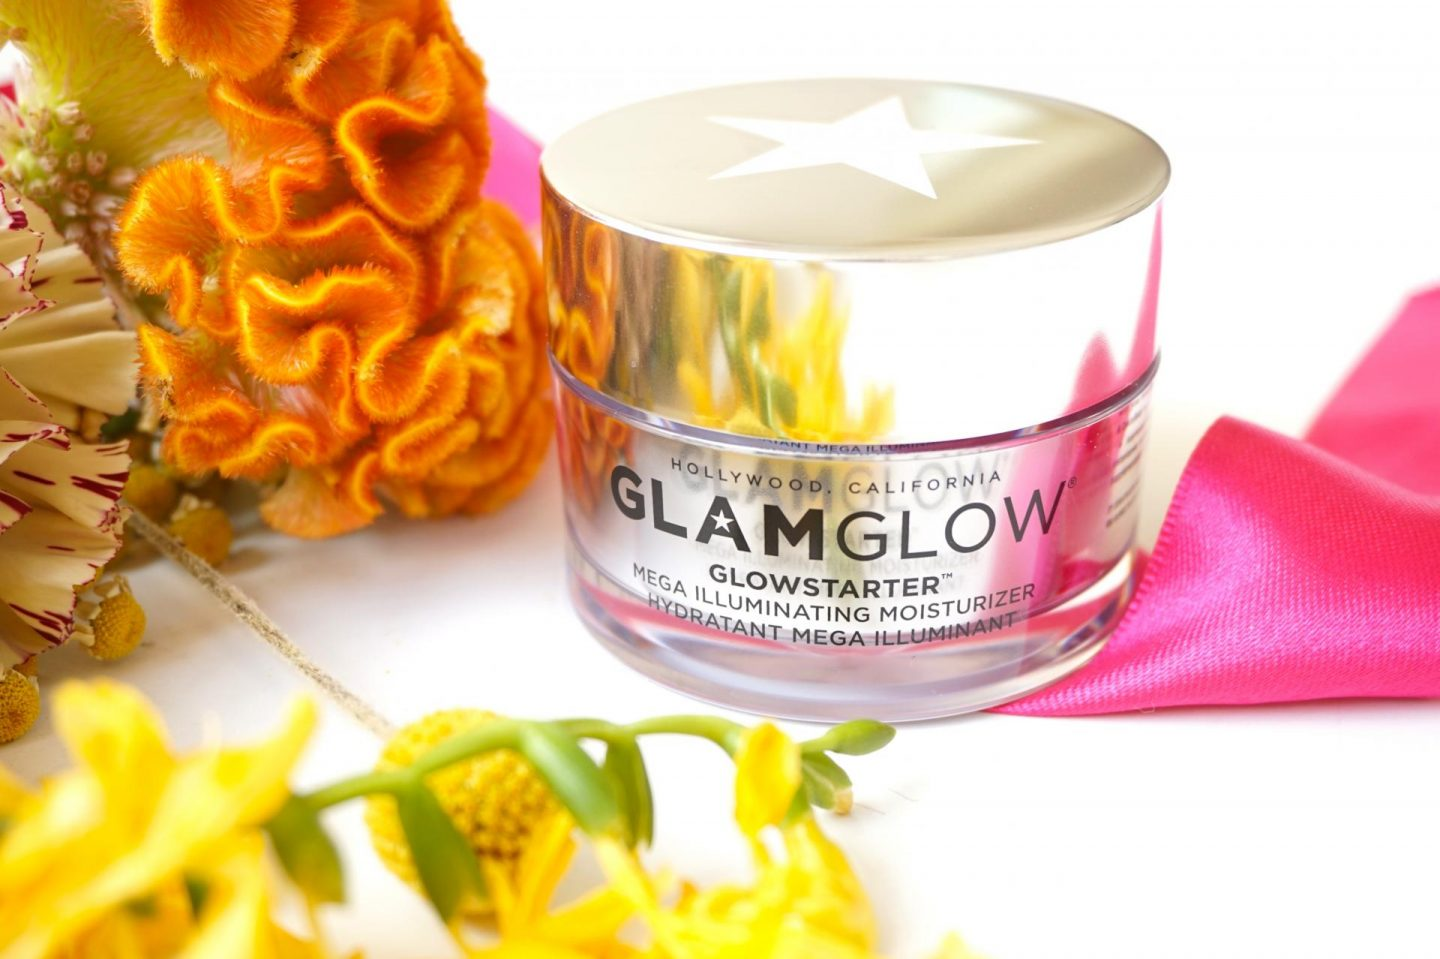 Glamglow Glowstarter in Pearl Glow